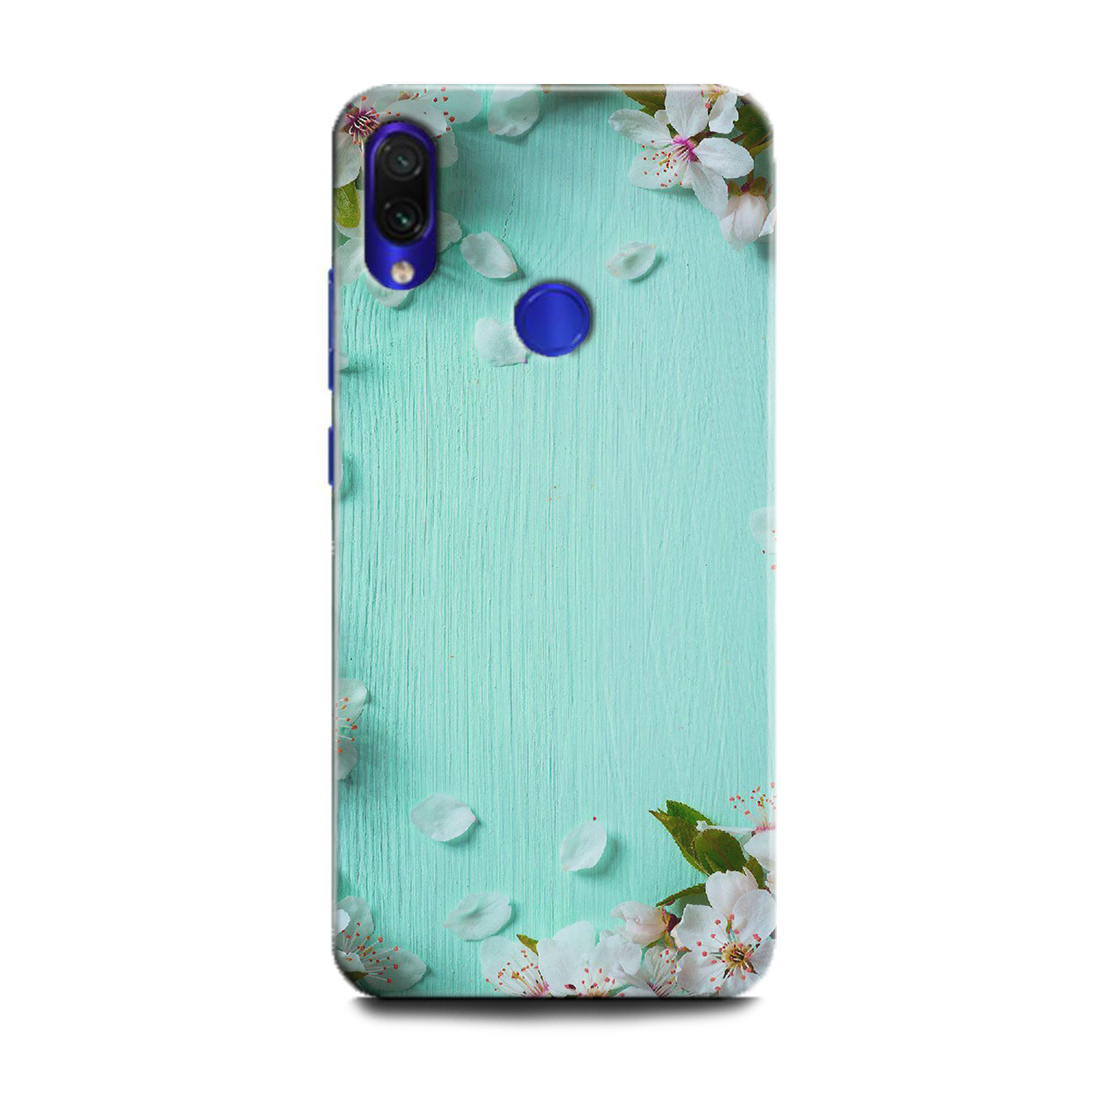 INDICRAFT Mobile Back Cover For Mi Redmi Note 7s / Hard Case (Flowers, White Flowers, Nature, MZB7742IN) (AB-RedmiNote7s-0314)